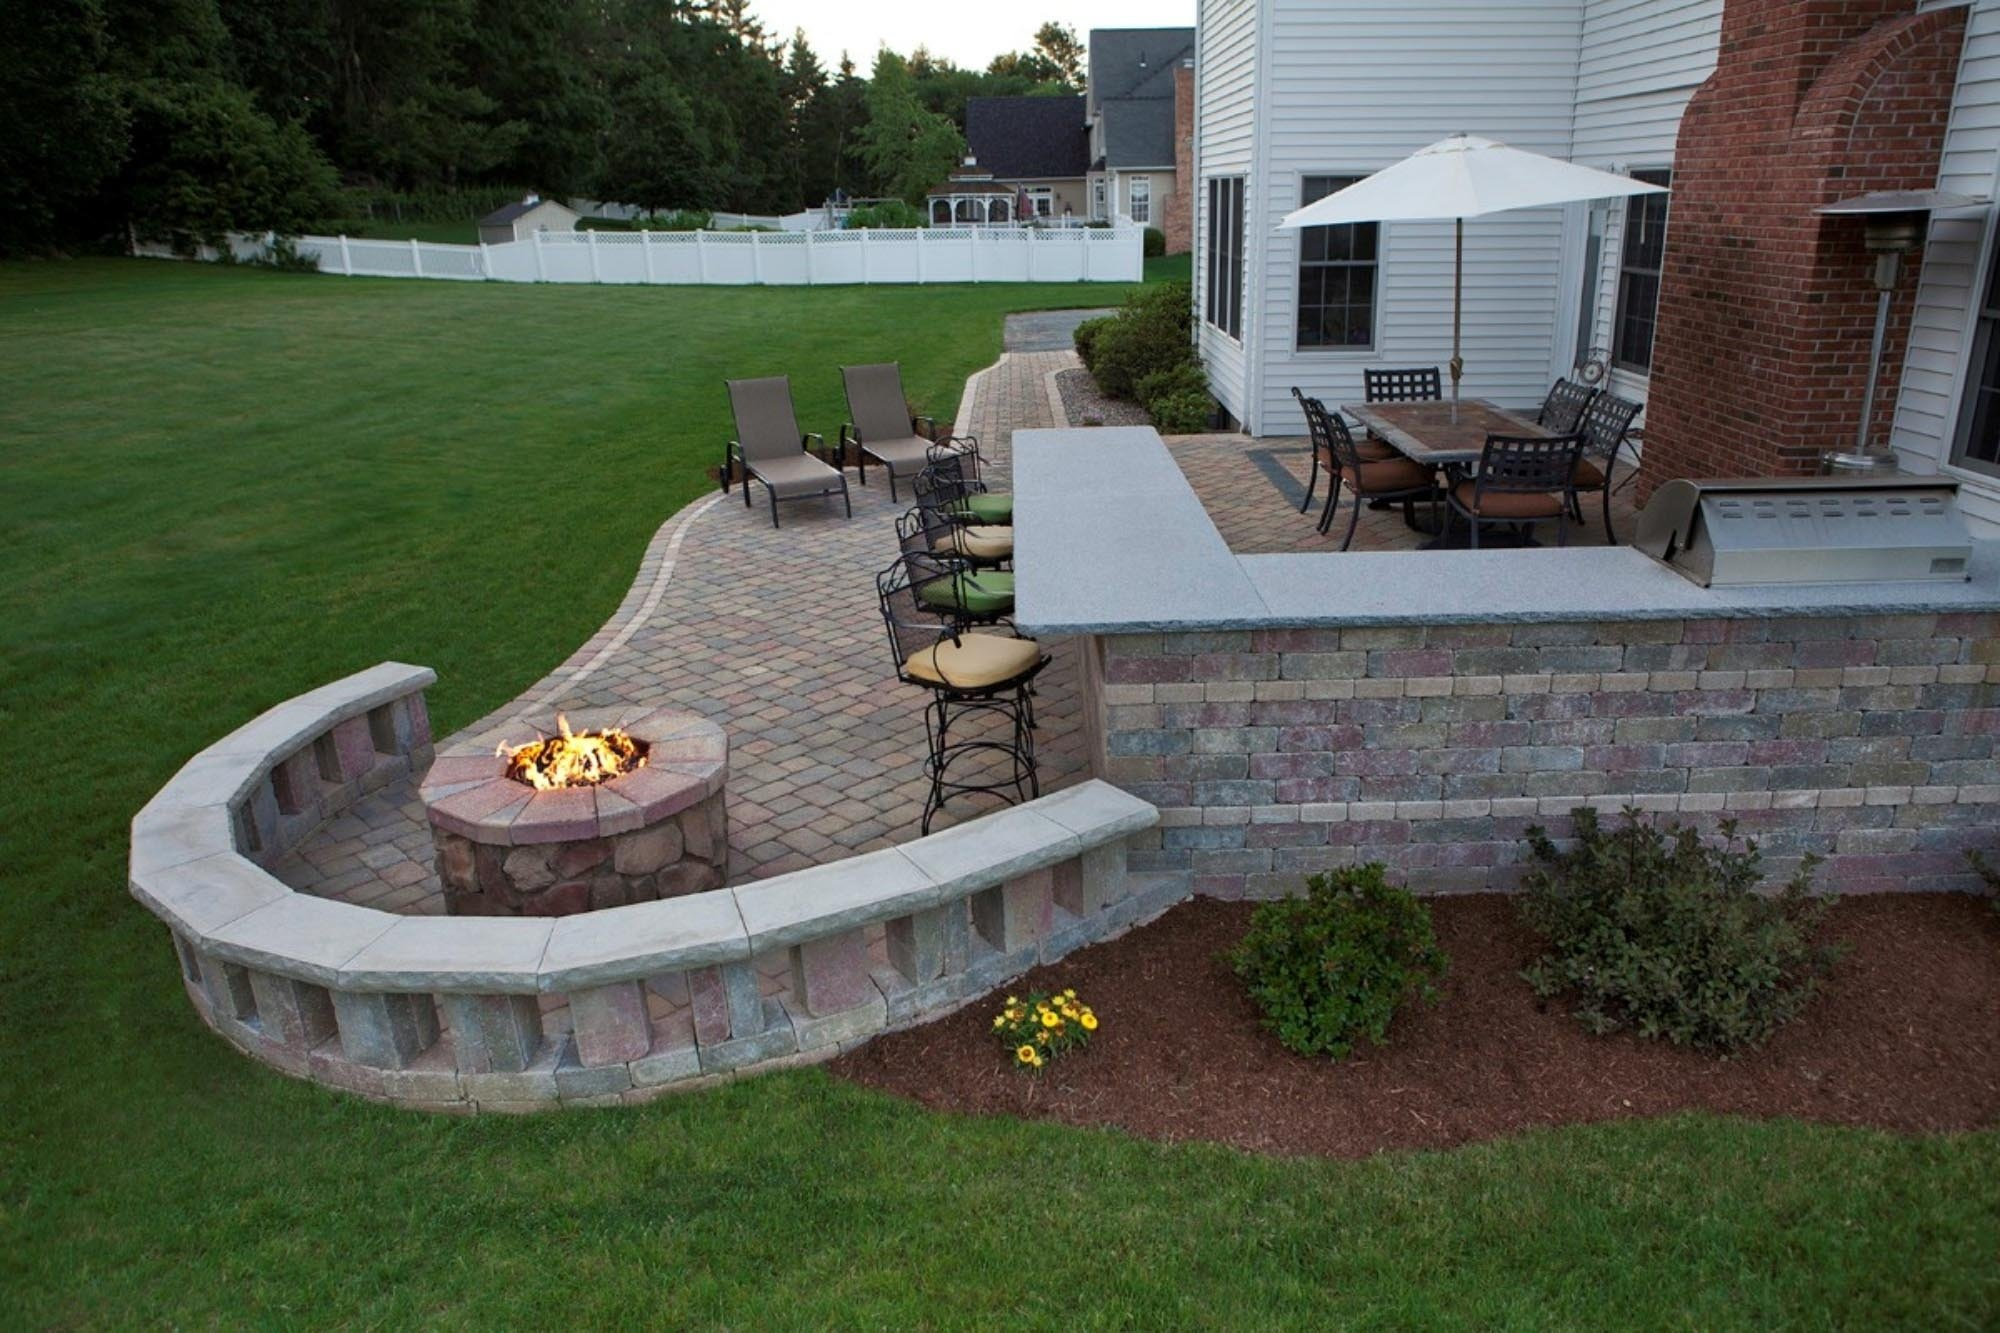 10 Fantastic Outdoor Patio Ideas With Fire Pit lavishly built in fire pit patio beautiful outdoor ideas 66 and 2020